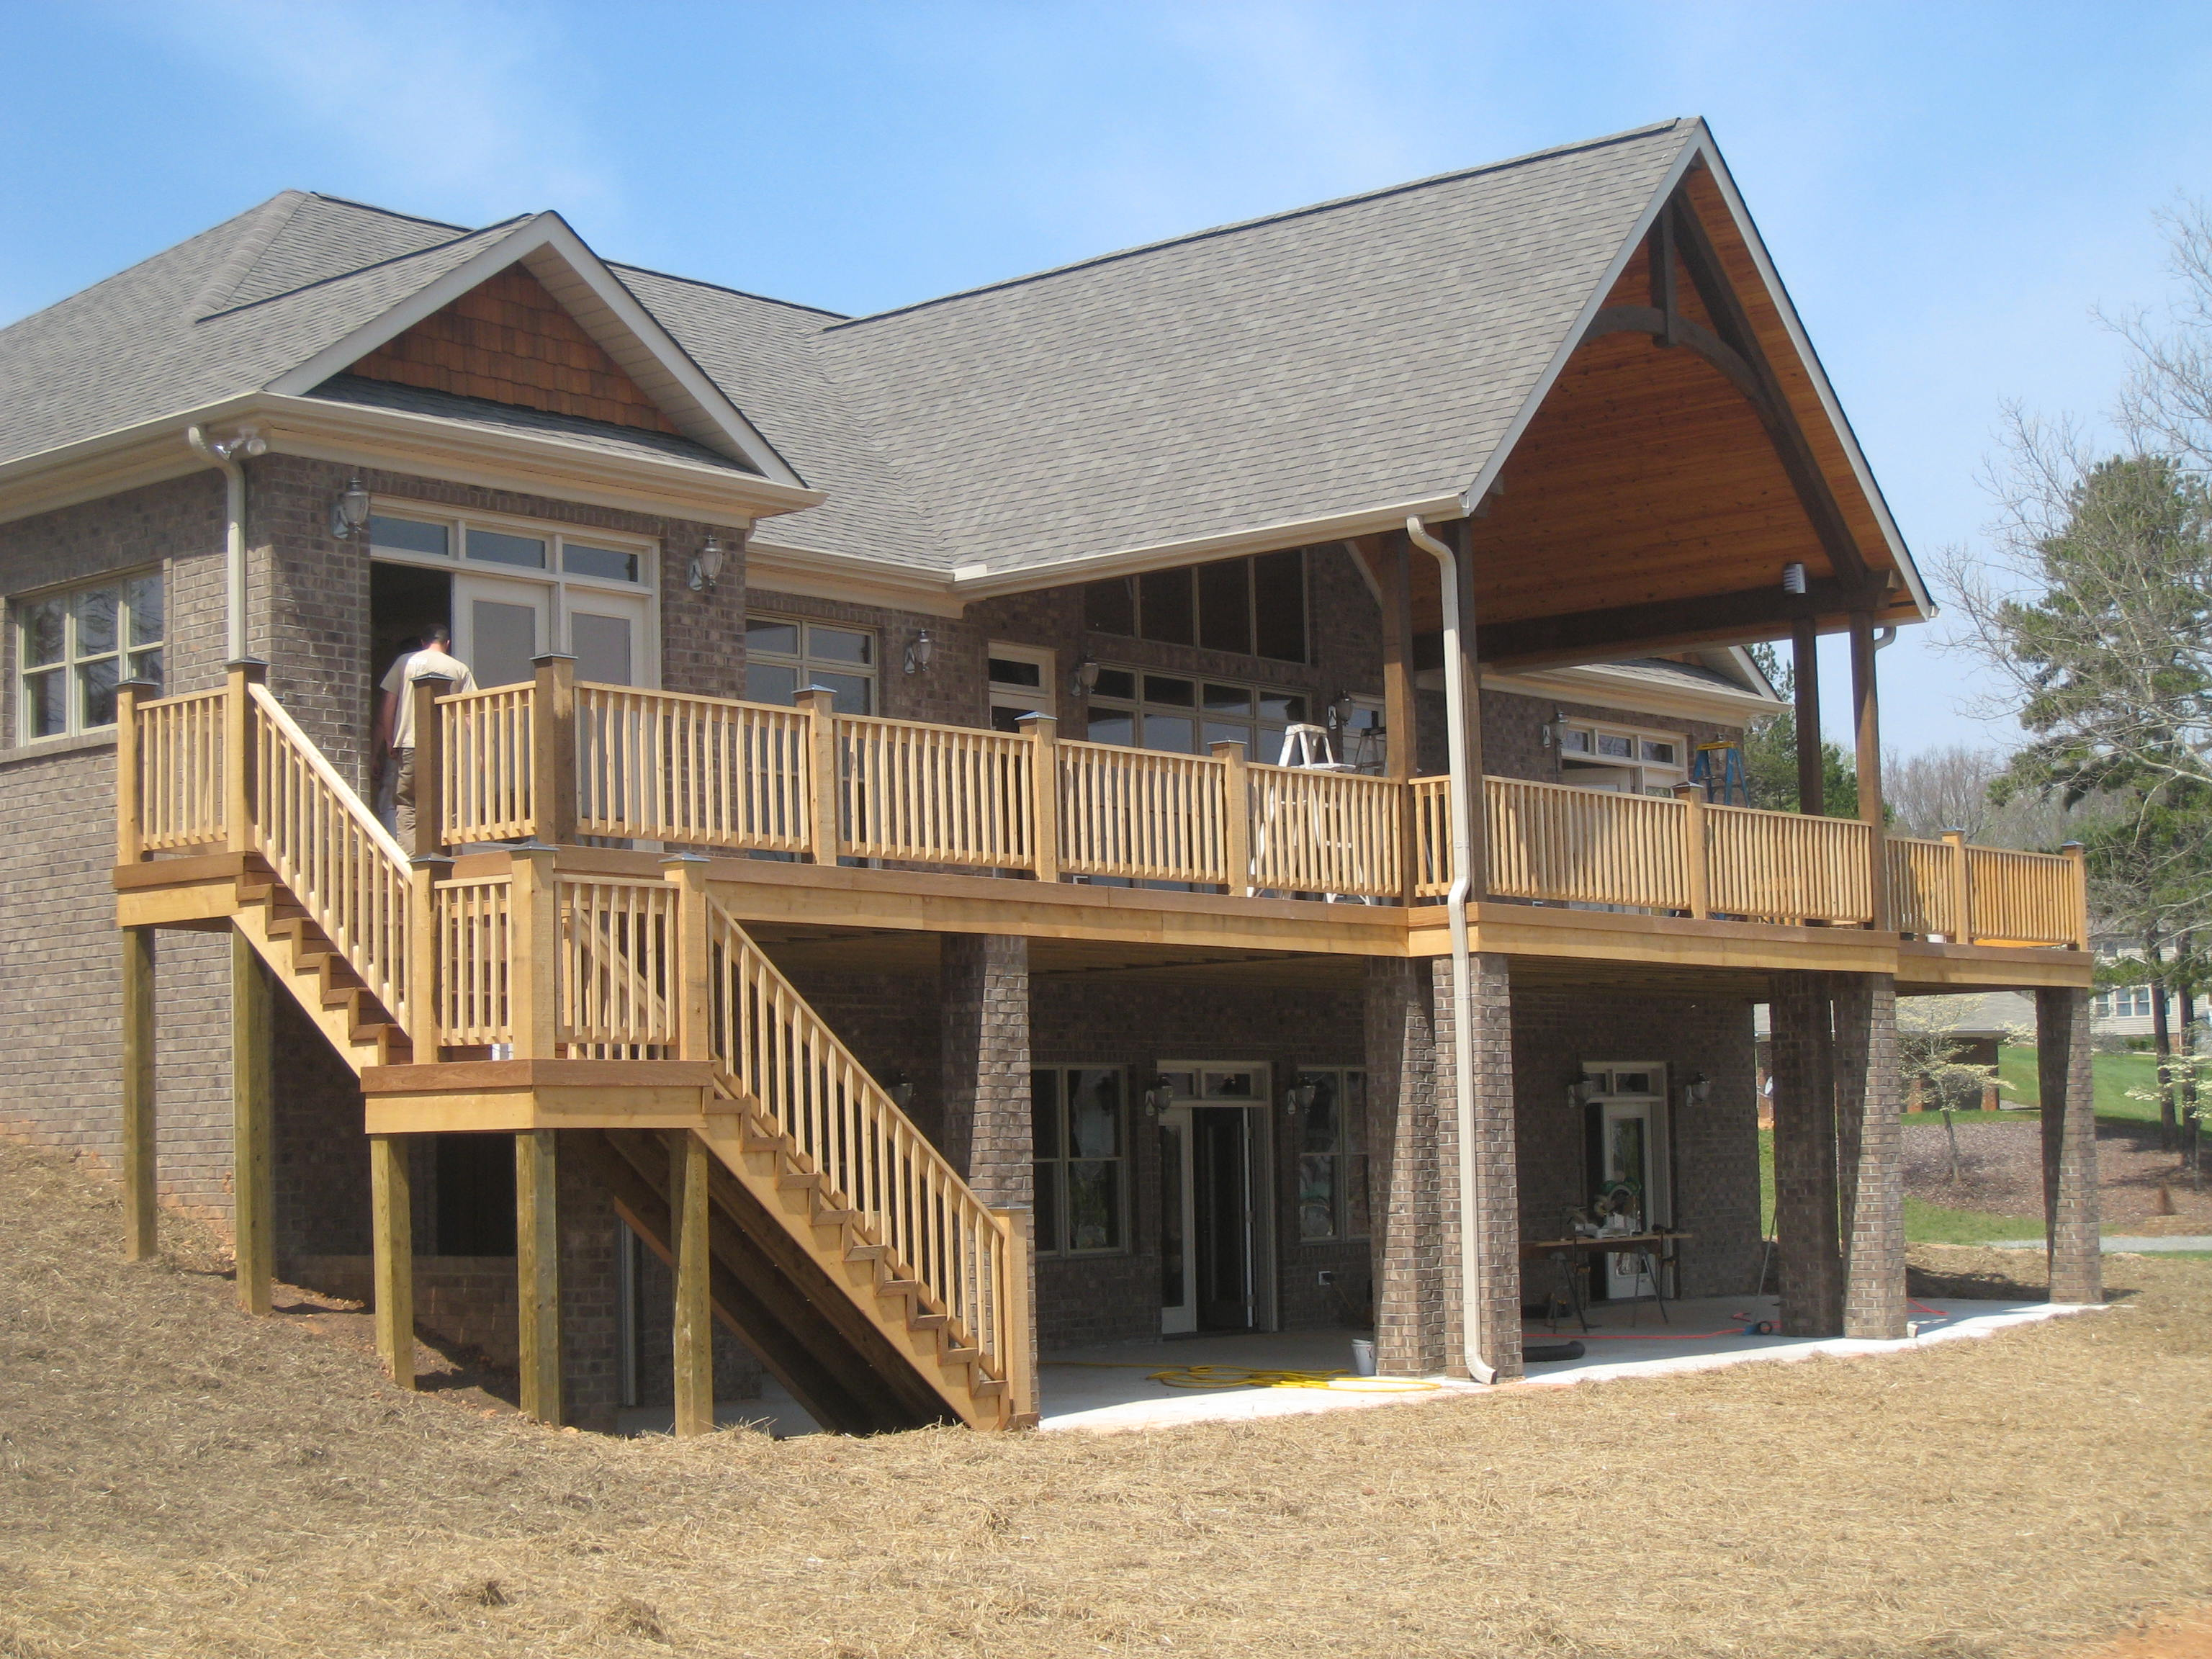 New home with custom porch designed by custom home builders Hedrick Creative Building, LLC in Lexington, NC